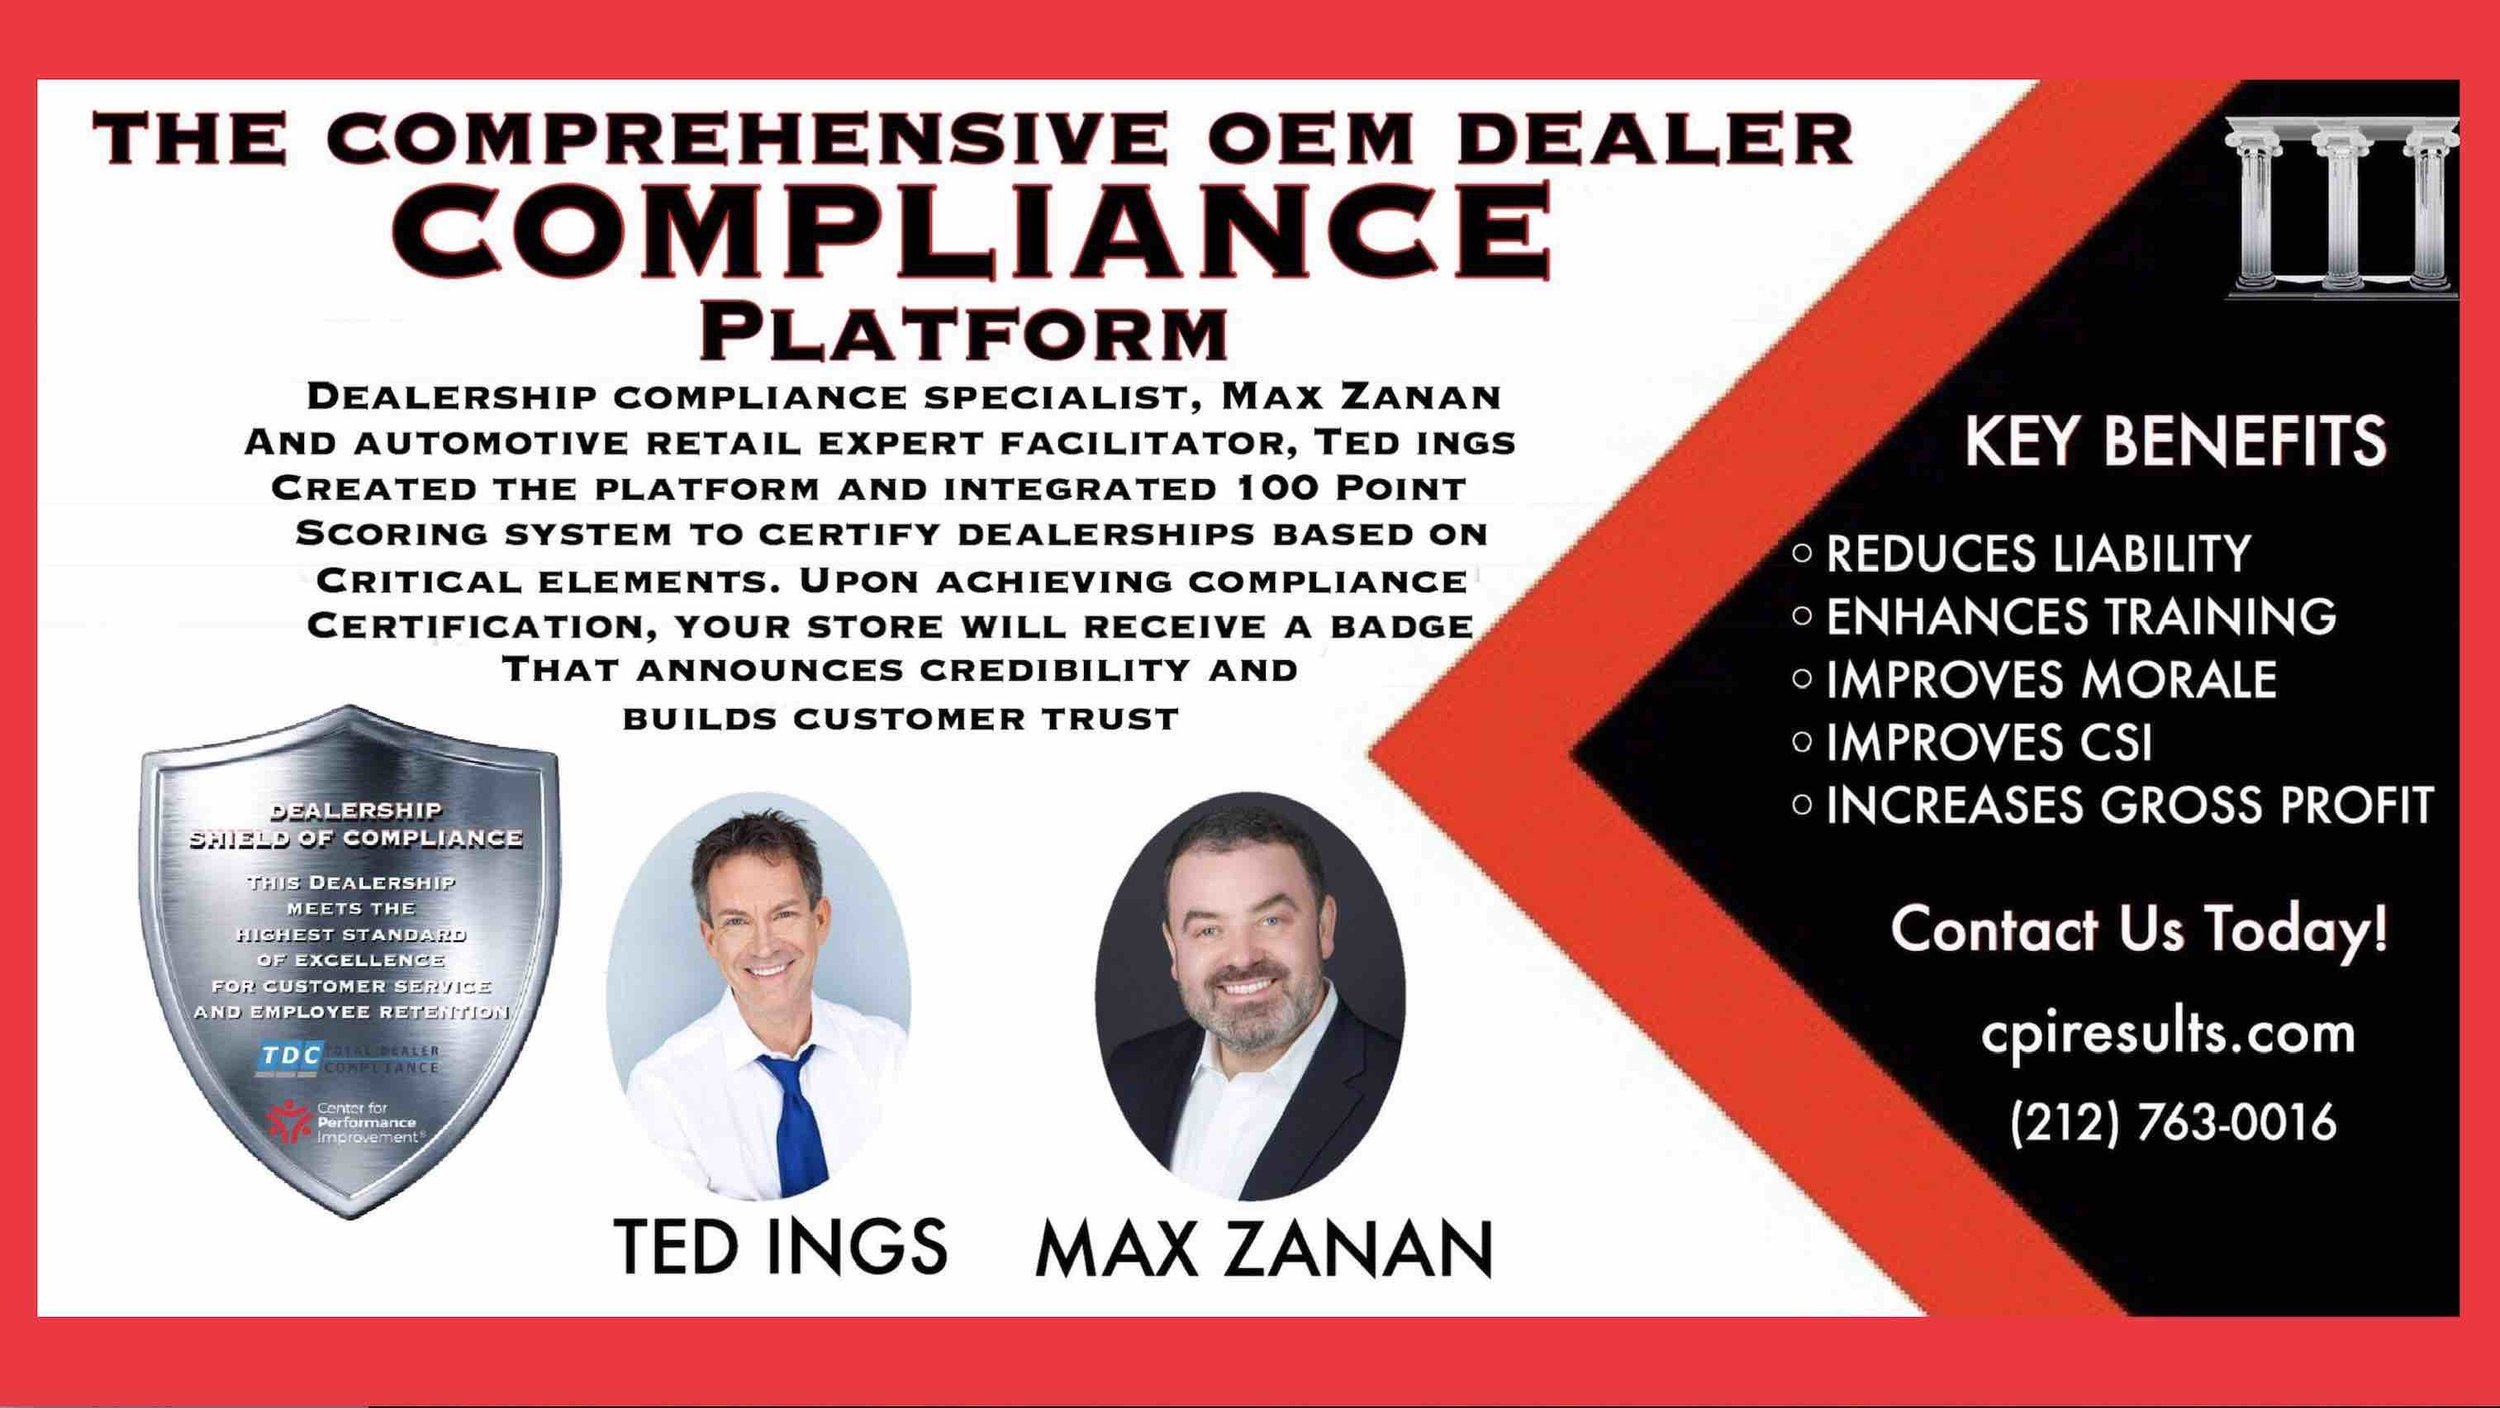 Max Zanan and Ted Ings - Dealer Compliance Platform.jpg